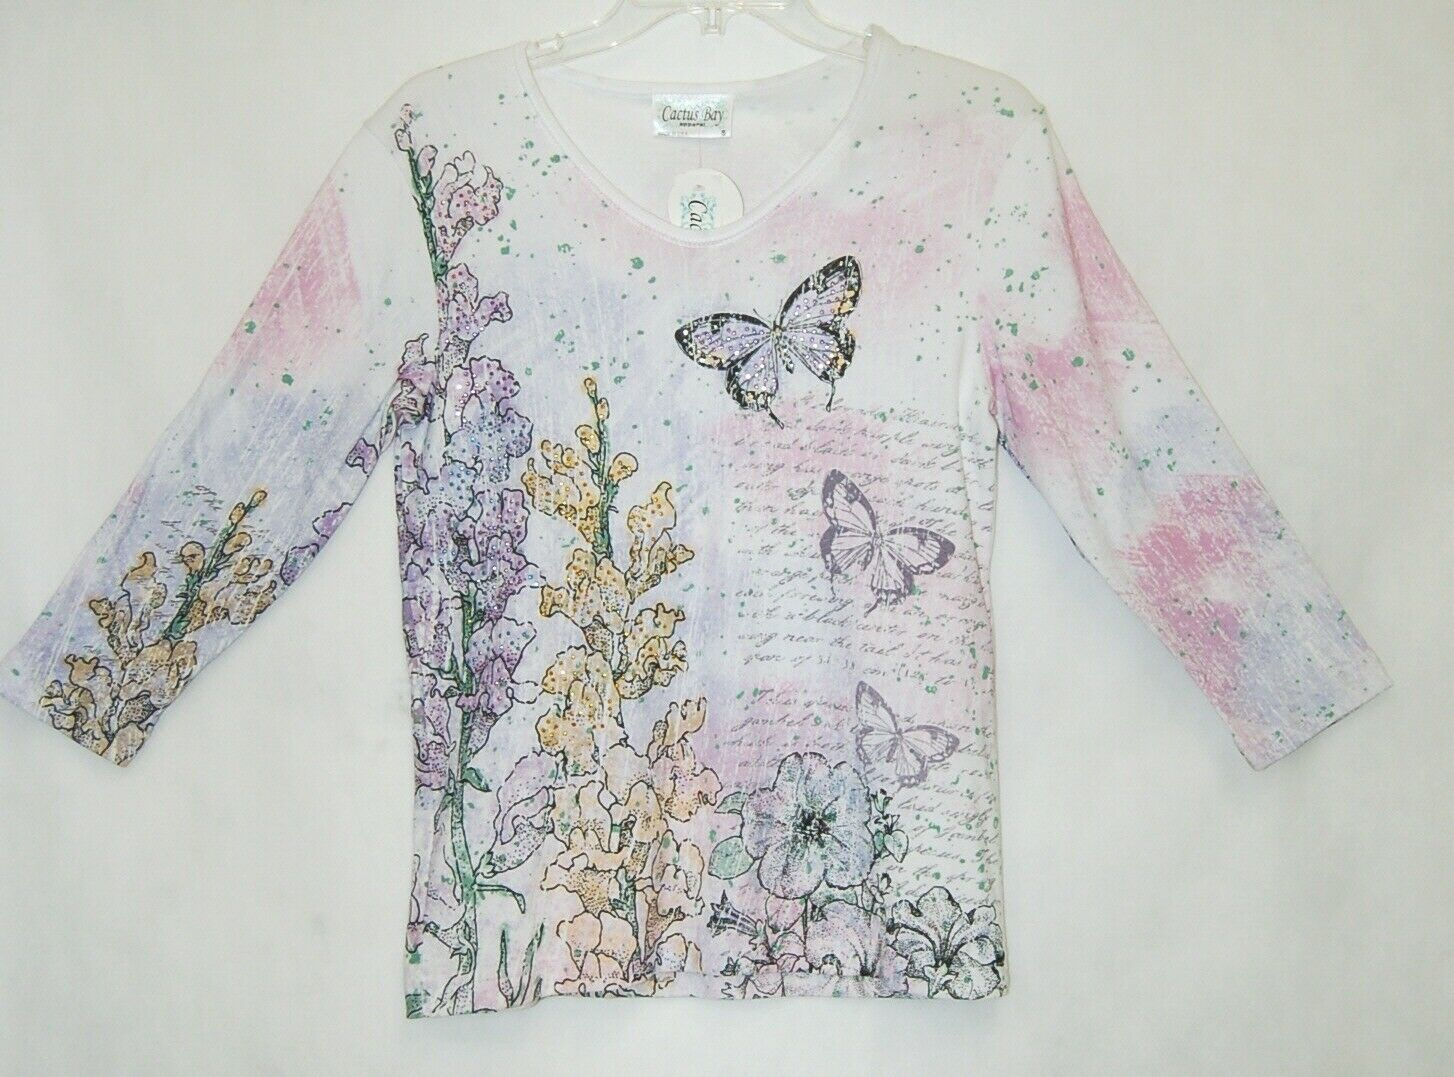 Cactus Bay Apparel Pink Purple White Butterfly Snapdragon Shirt Size Small